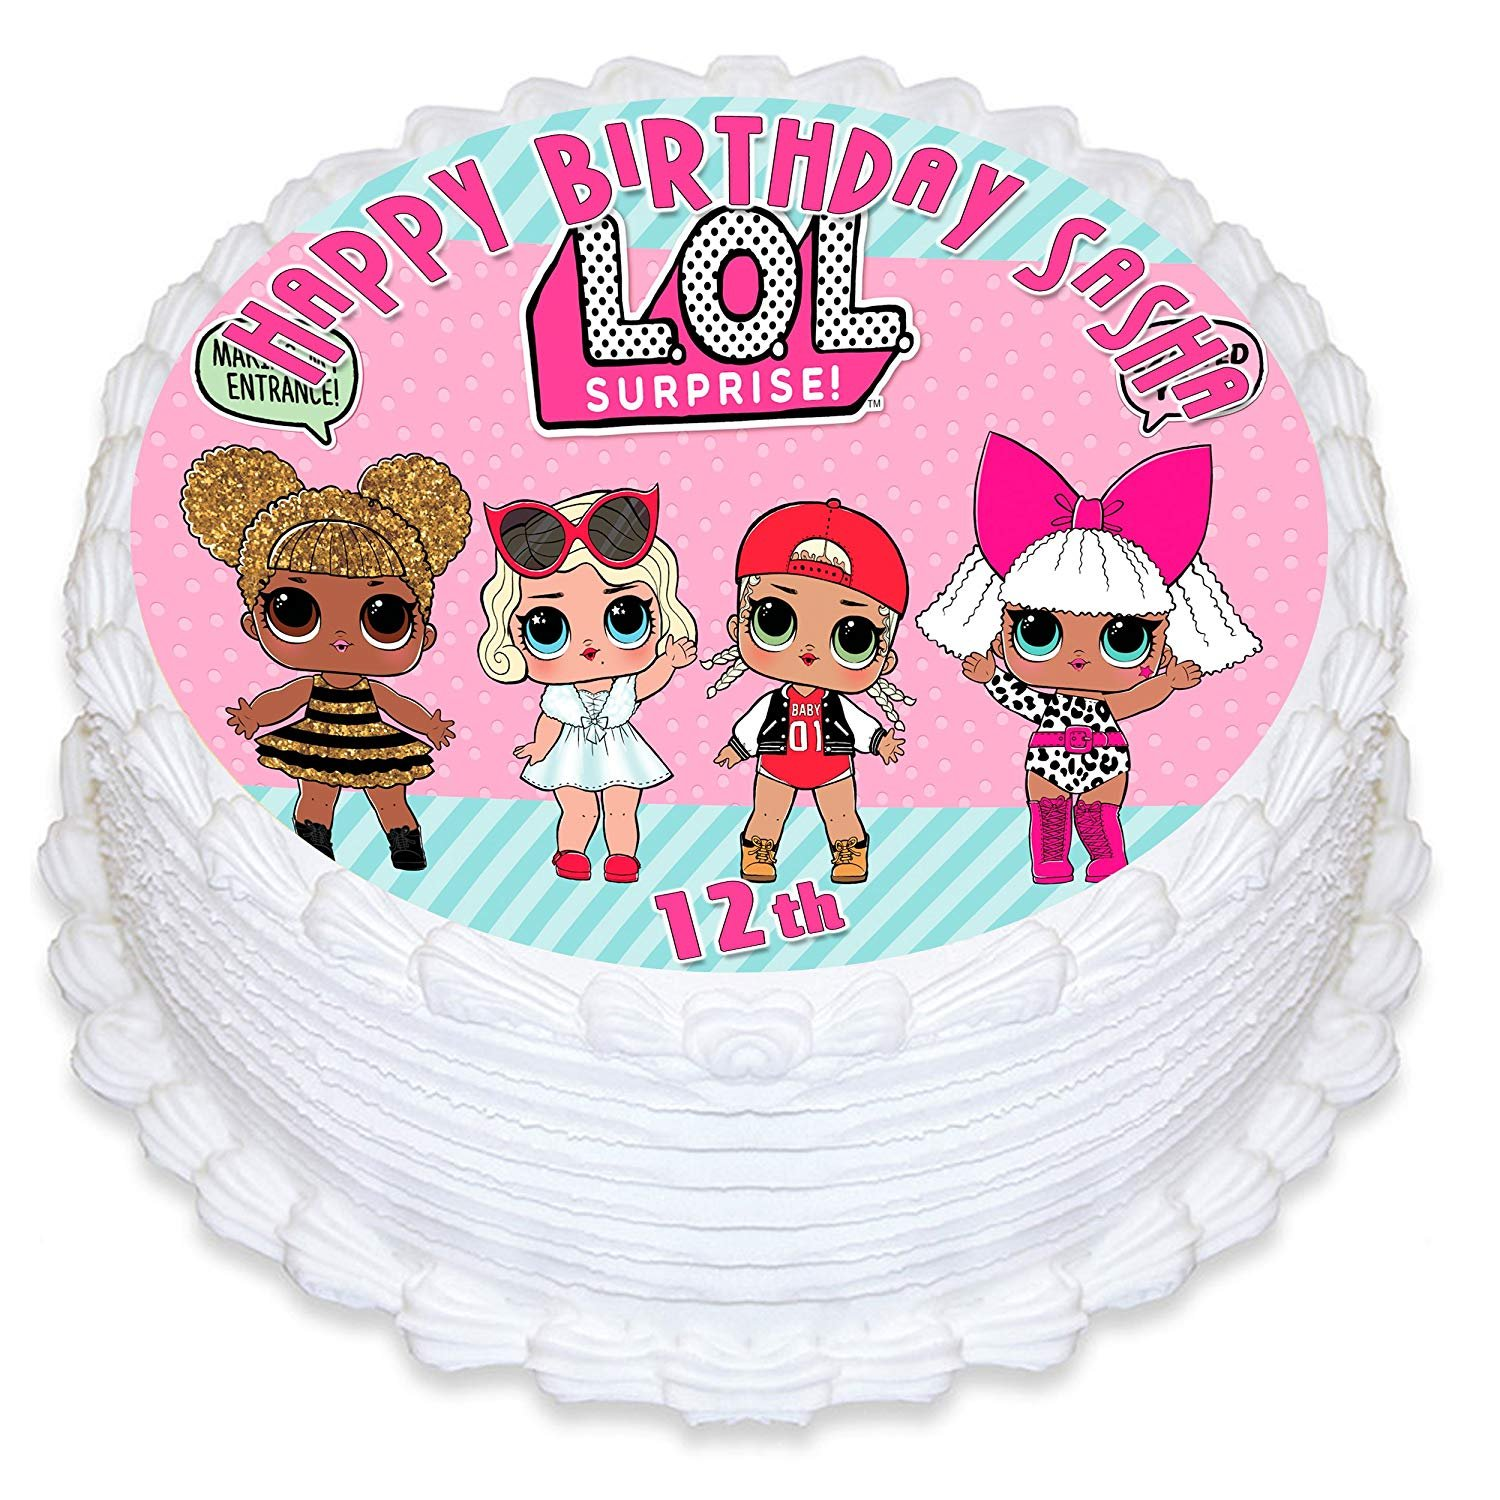 Cake Topper Personalized Birthday 10'' Round Circle Decoration Party Birthday Sugar Frosting Transfer Fondant Image ~ Best Quality Edible Image for Cake Surprice